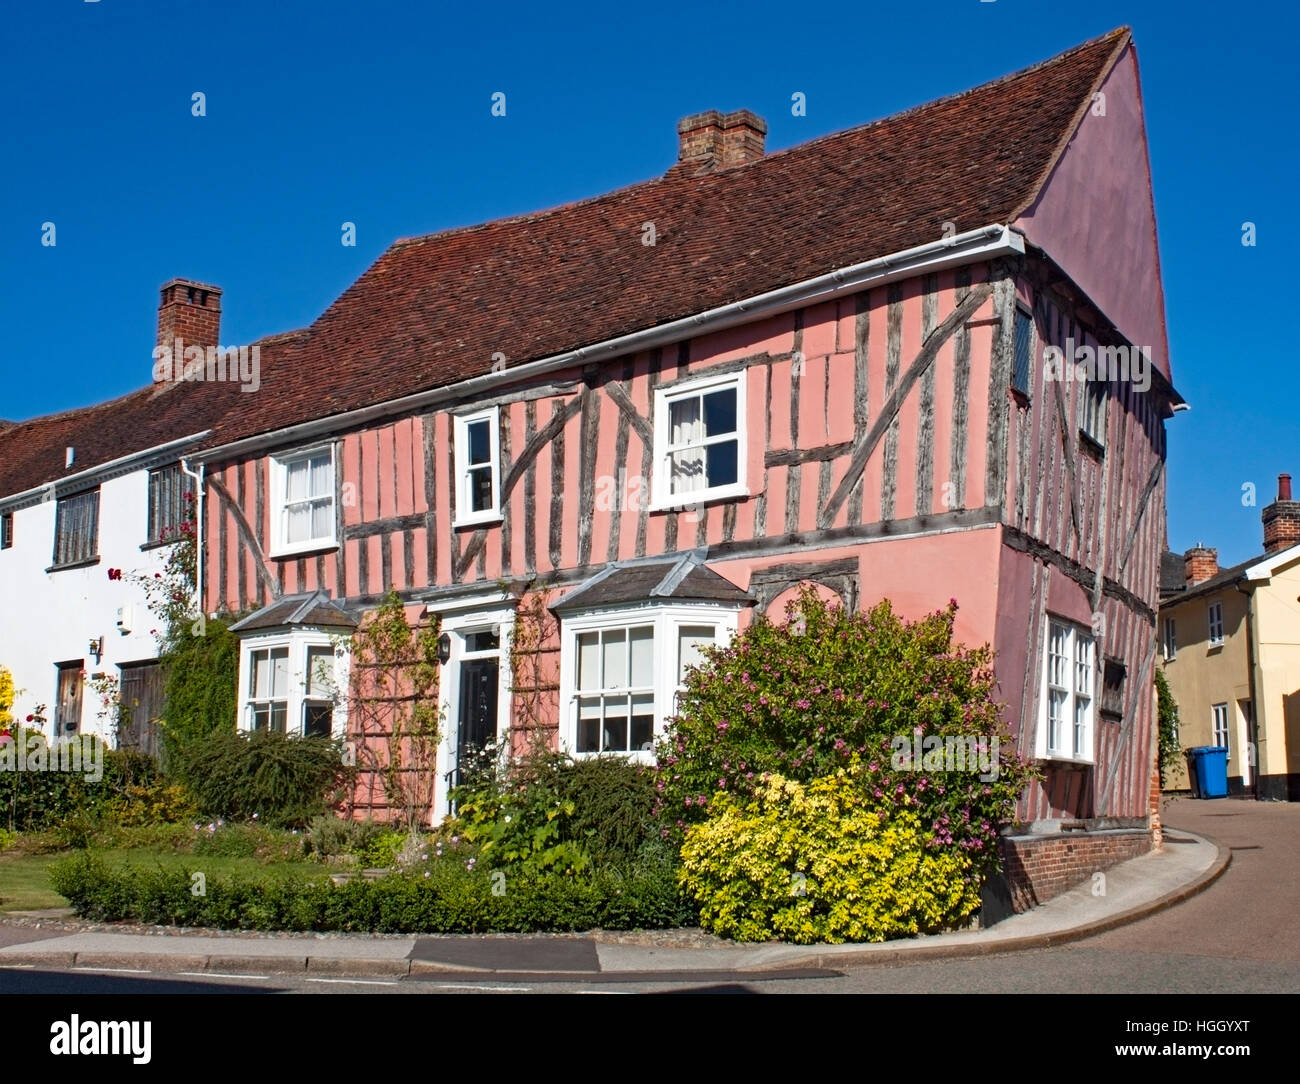 Medieval half-timbered house in the High Street, Lavenham,Suffolk,England - Stock Image